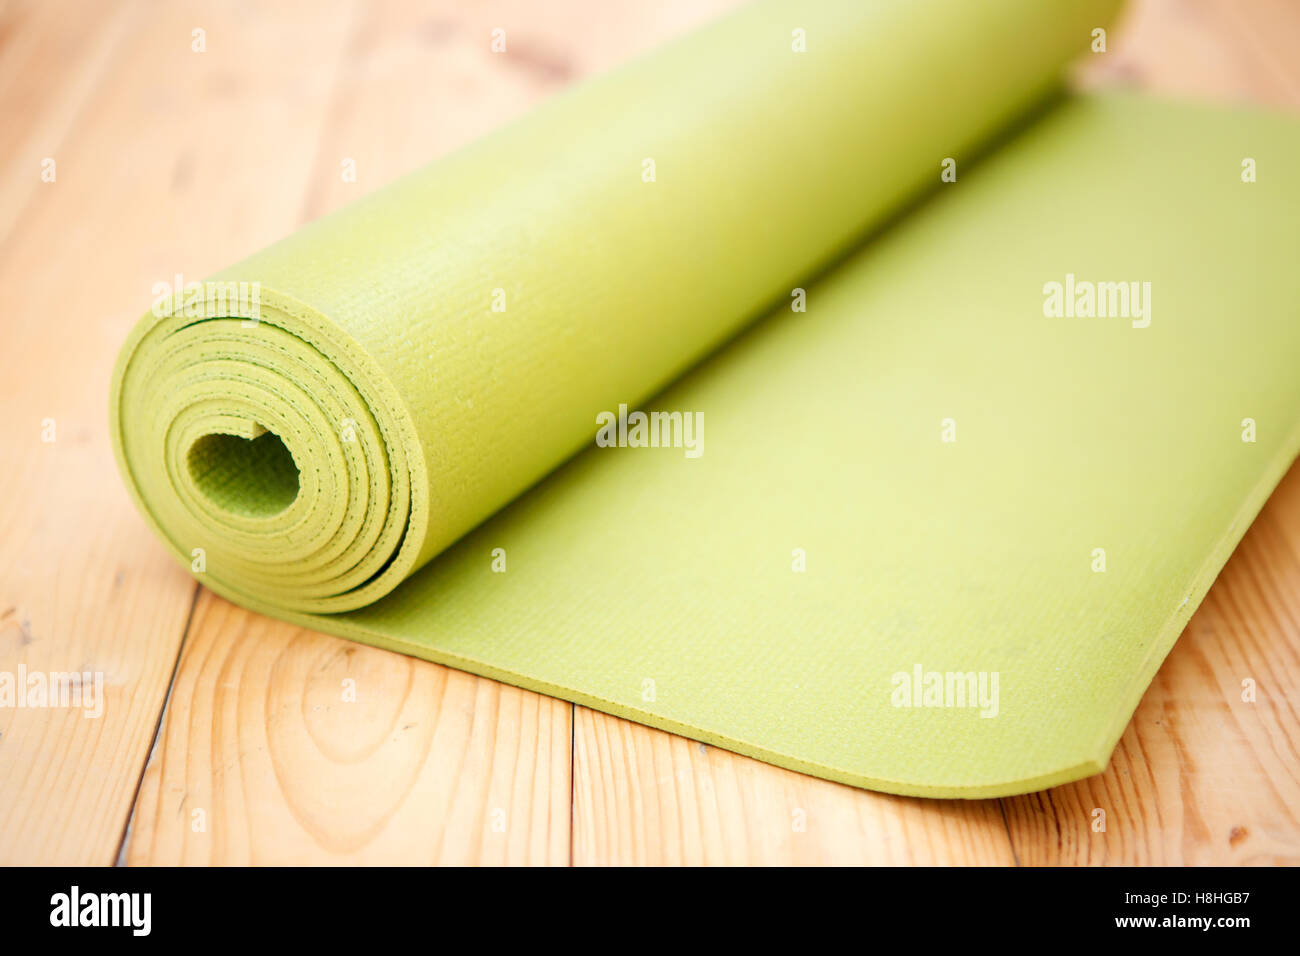 Twisted green mat for exercise - Stock Image